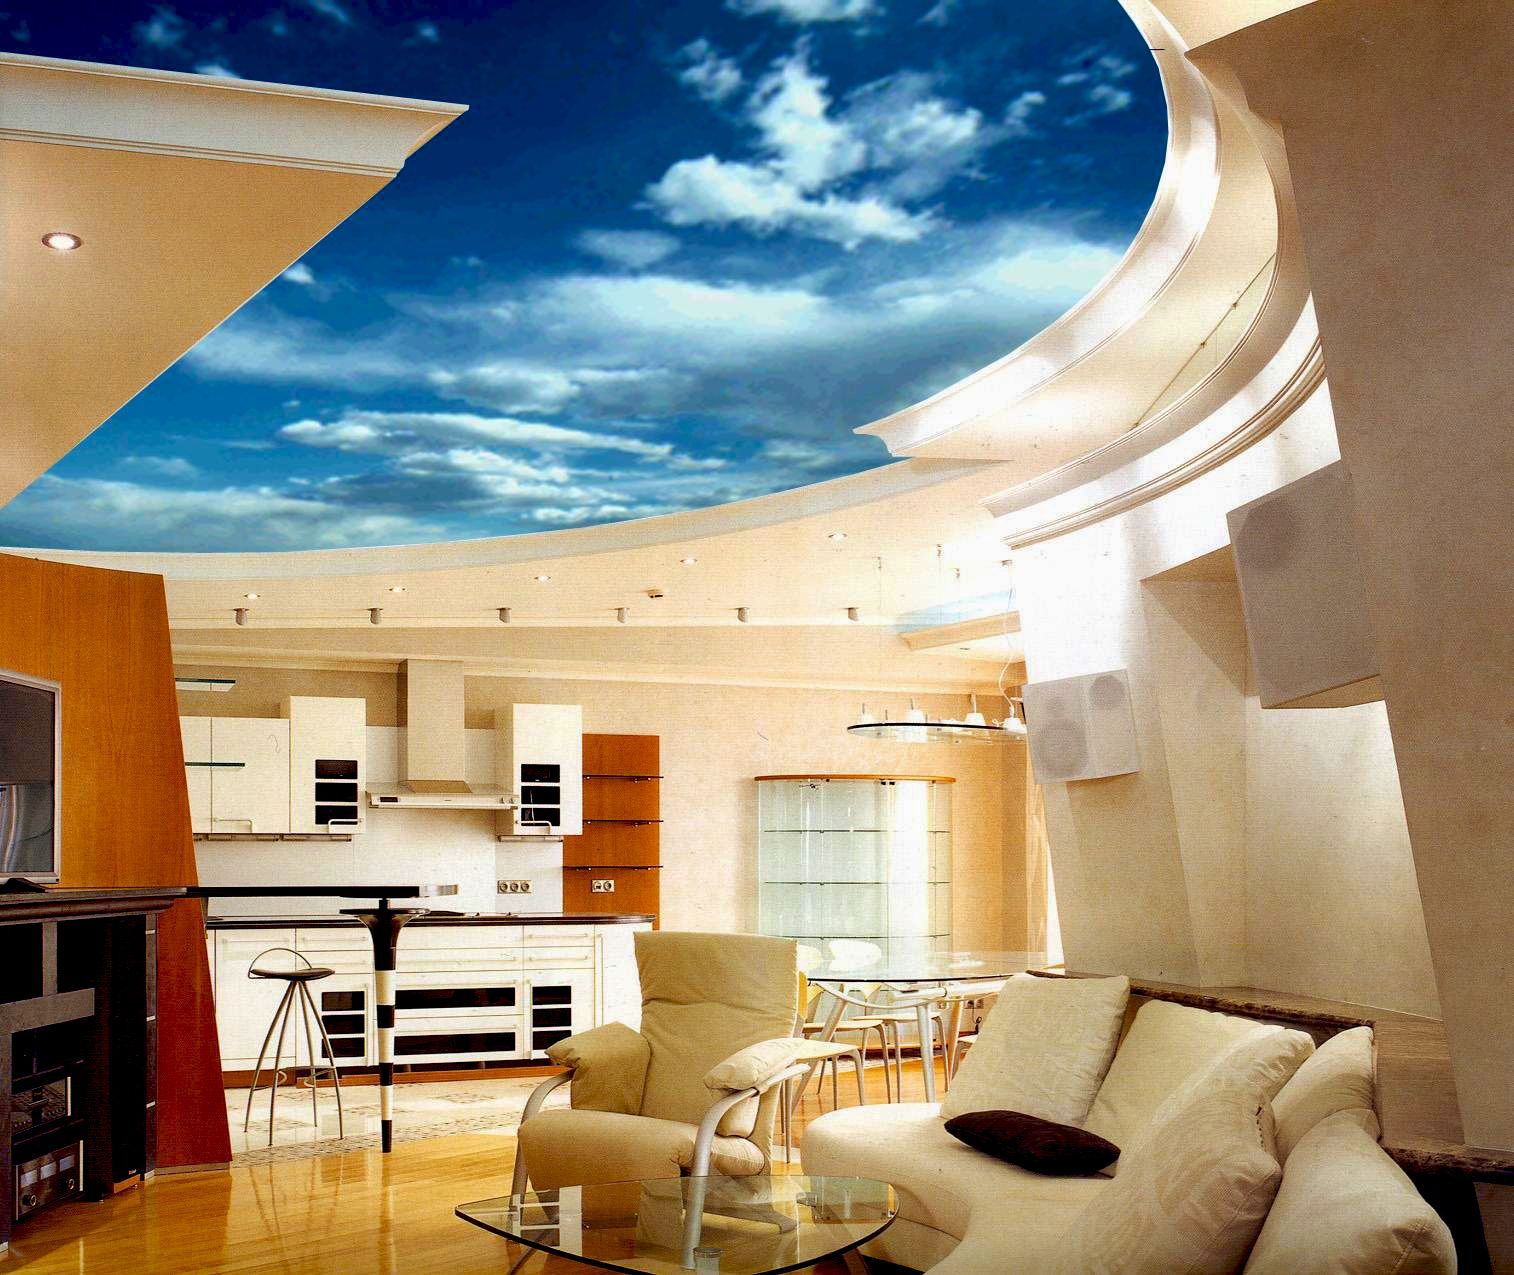 Stretch Ceiling House - Google Search